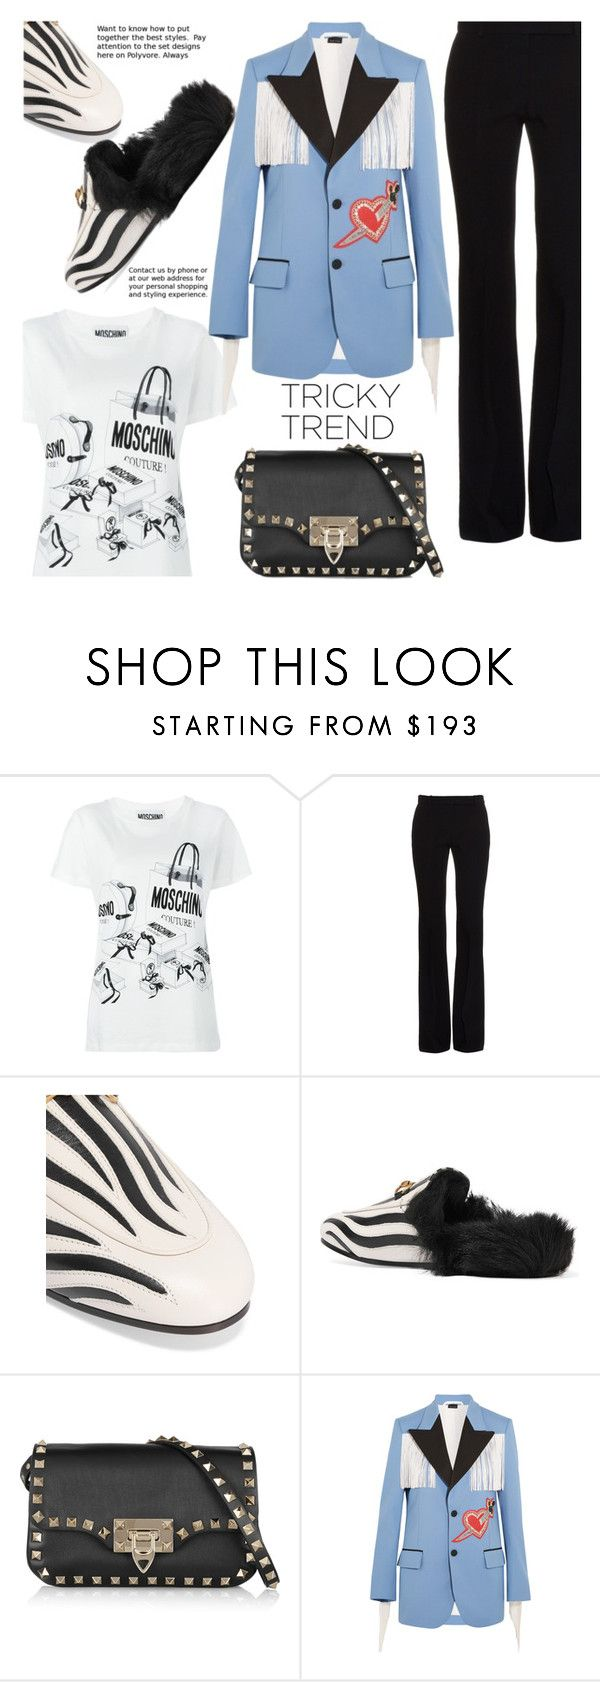 """New Trend"" by gabrilungu ❤ liked on Polyvore featuring Moschino, Alexander McQueen, Gucci and Valentino"